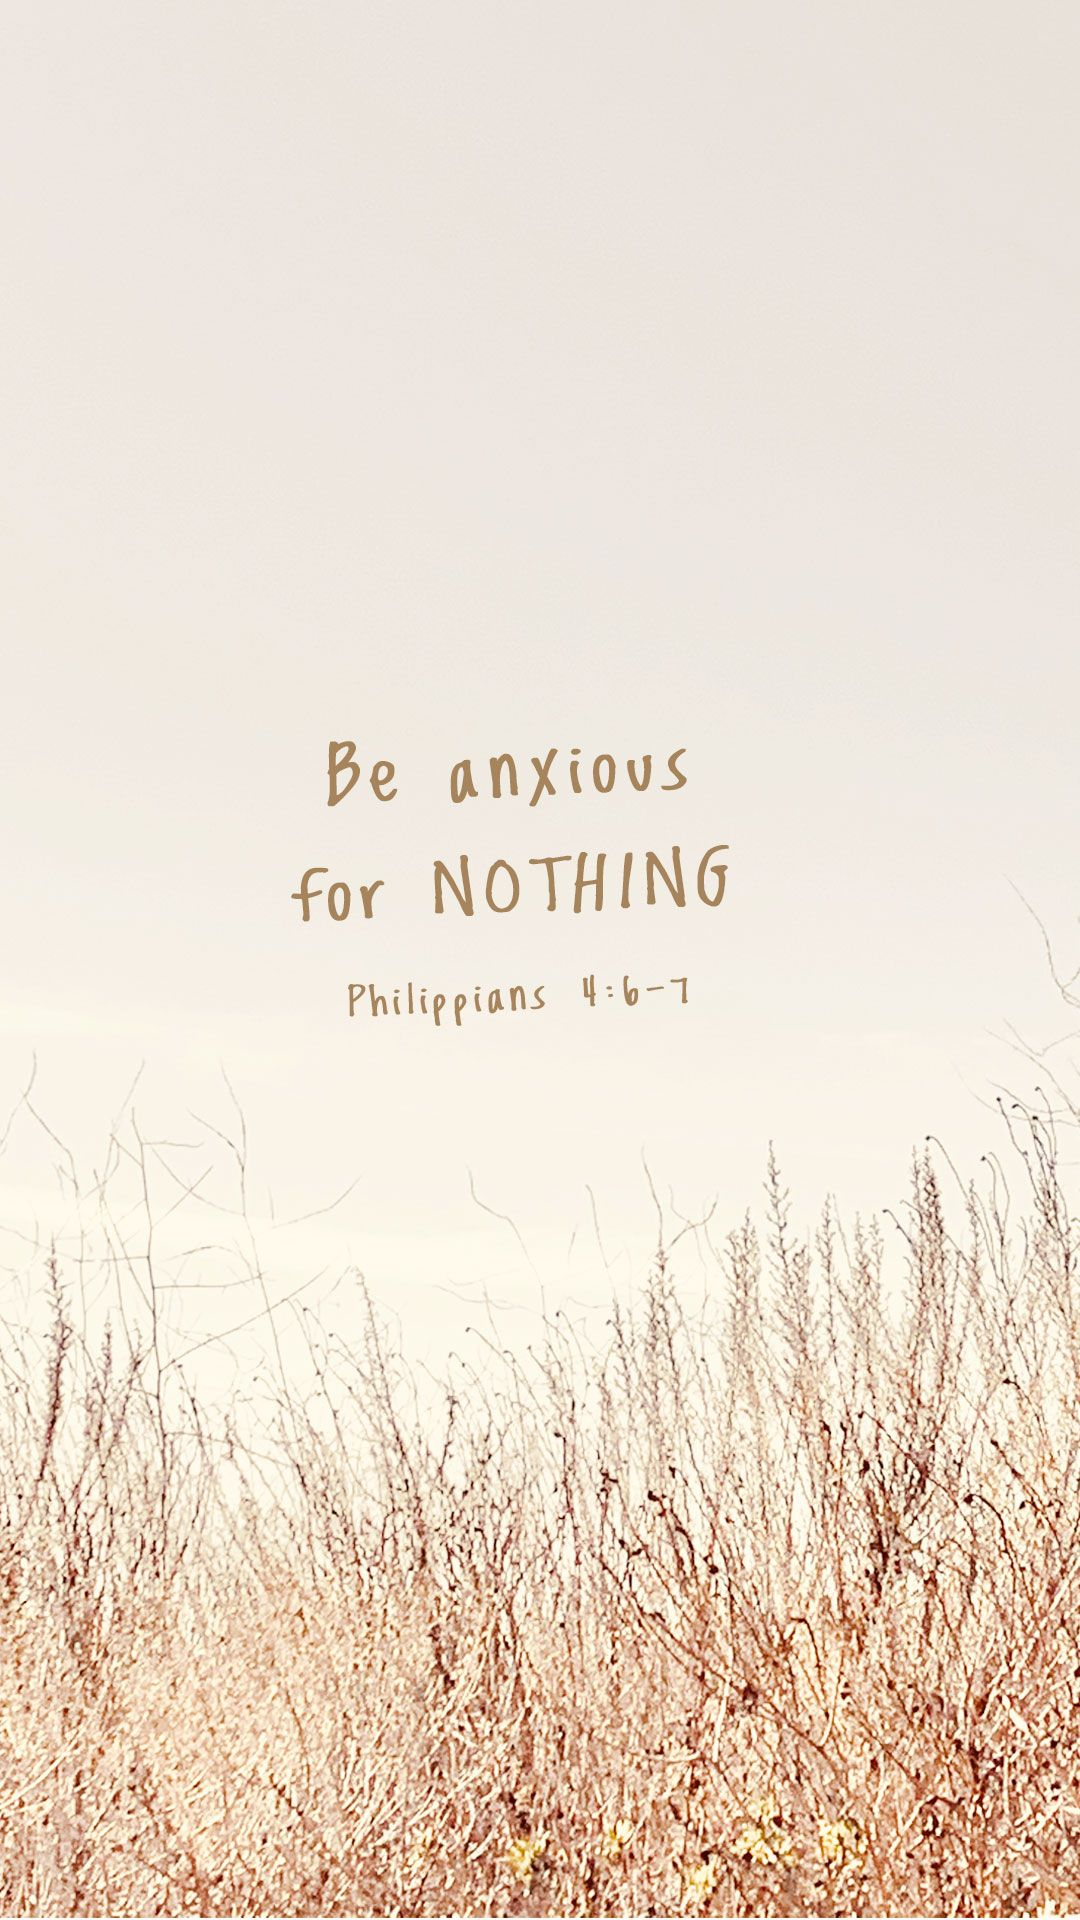 Be anxious for nothing, but in everything by PRAYER and supplication, with THANKSGIVING, let your requests be made known to God; and the PEACE of God, which surpasses ALL understanding, will guard your hearts and minds through CHRIST JESUS.